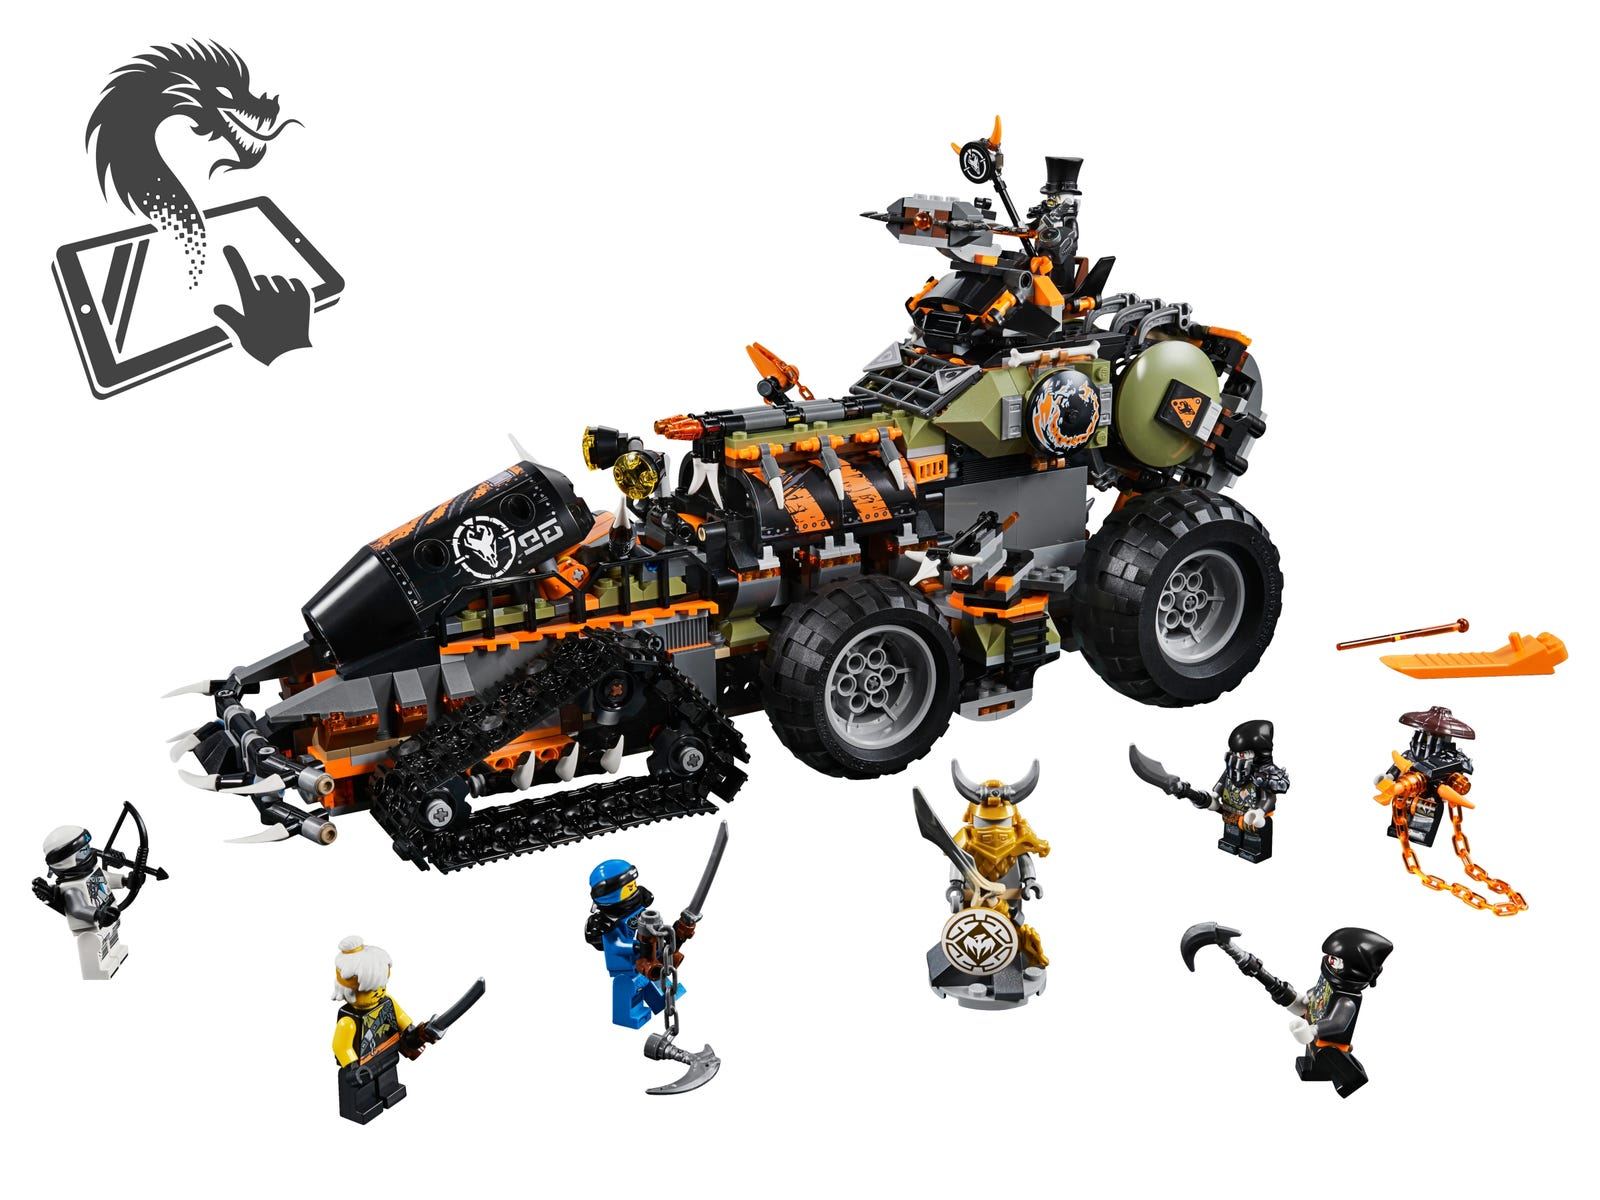 Dragon Armor Ninjago : It was located in firstbourne's nest until it was found by the iron baron and wu.